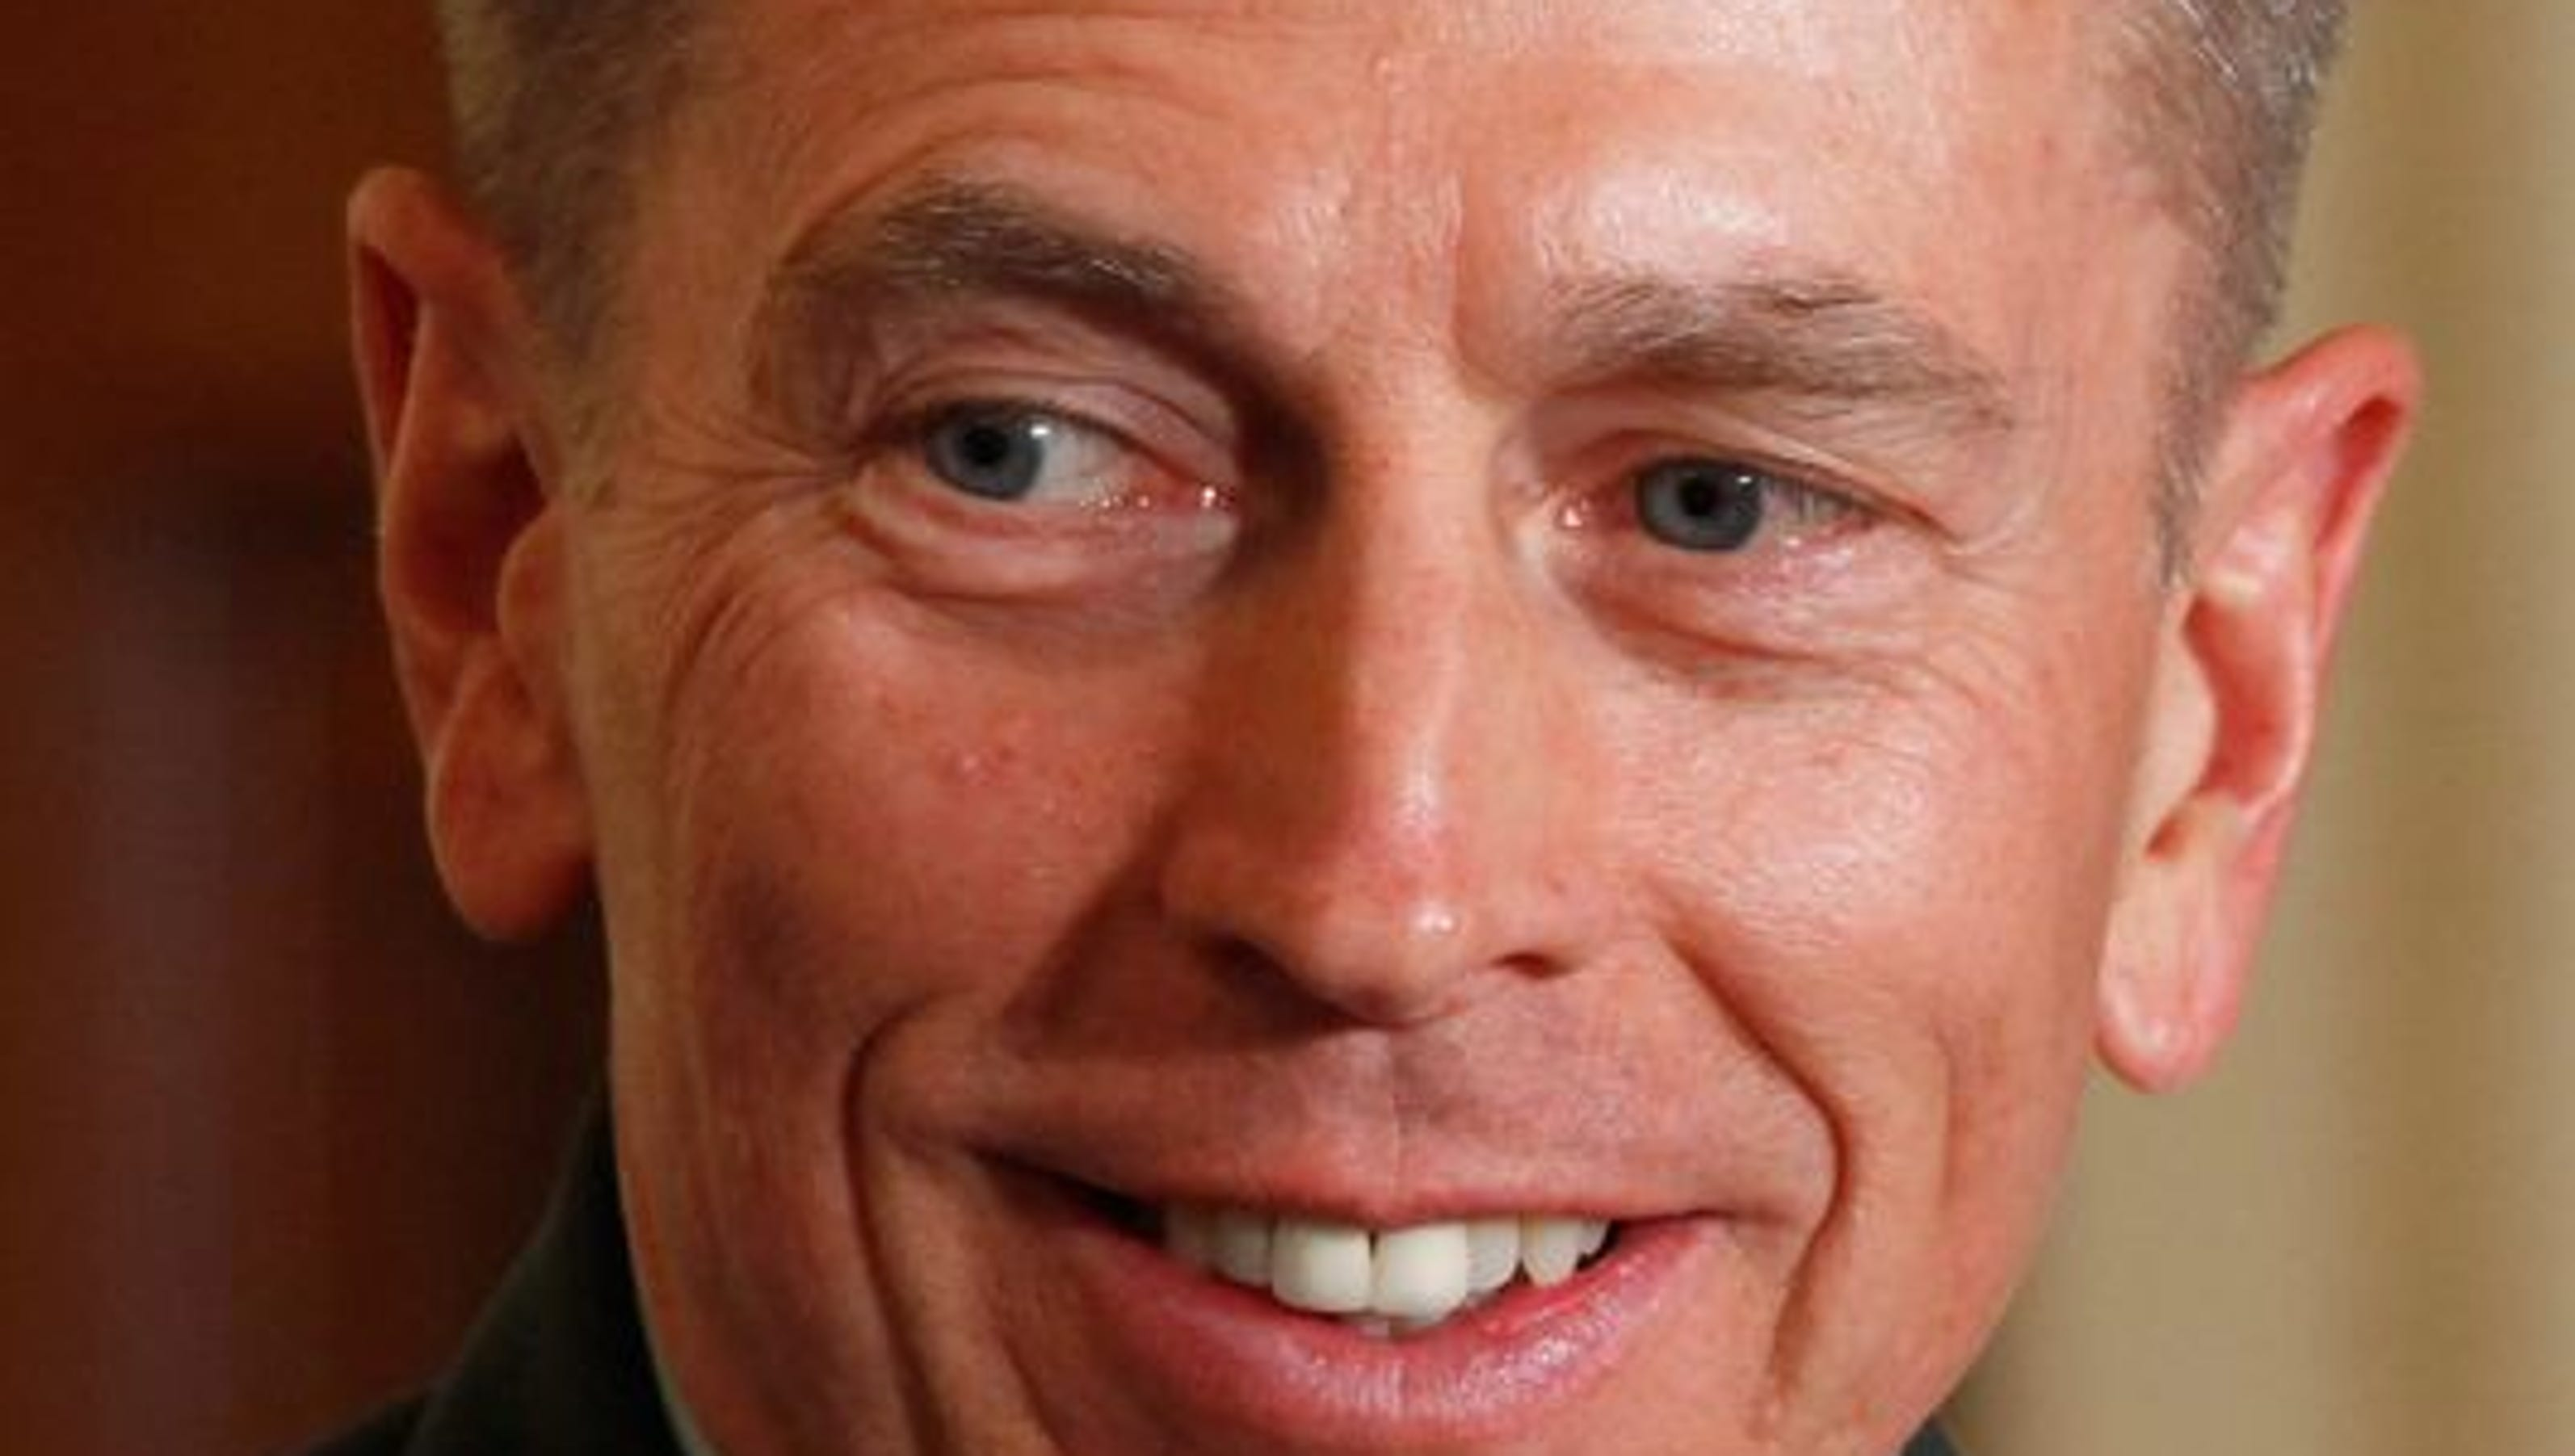 Criminal charges recommended against Petraeus